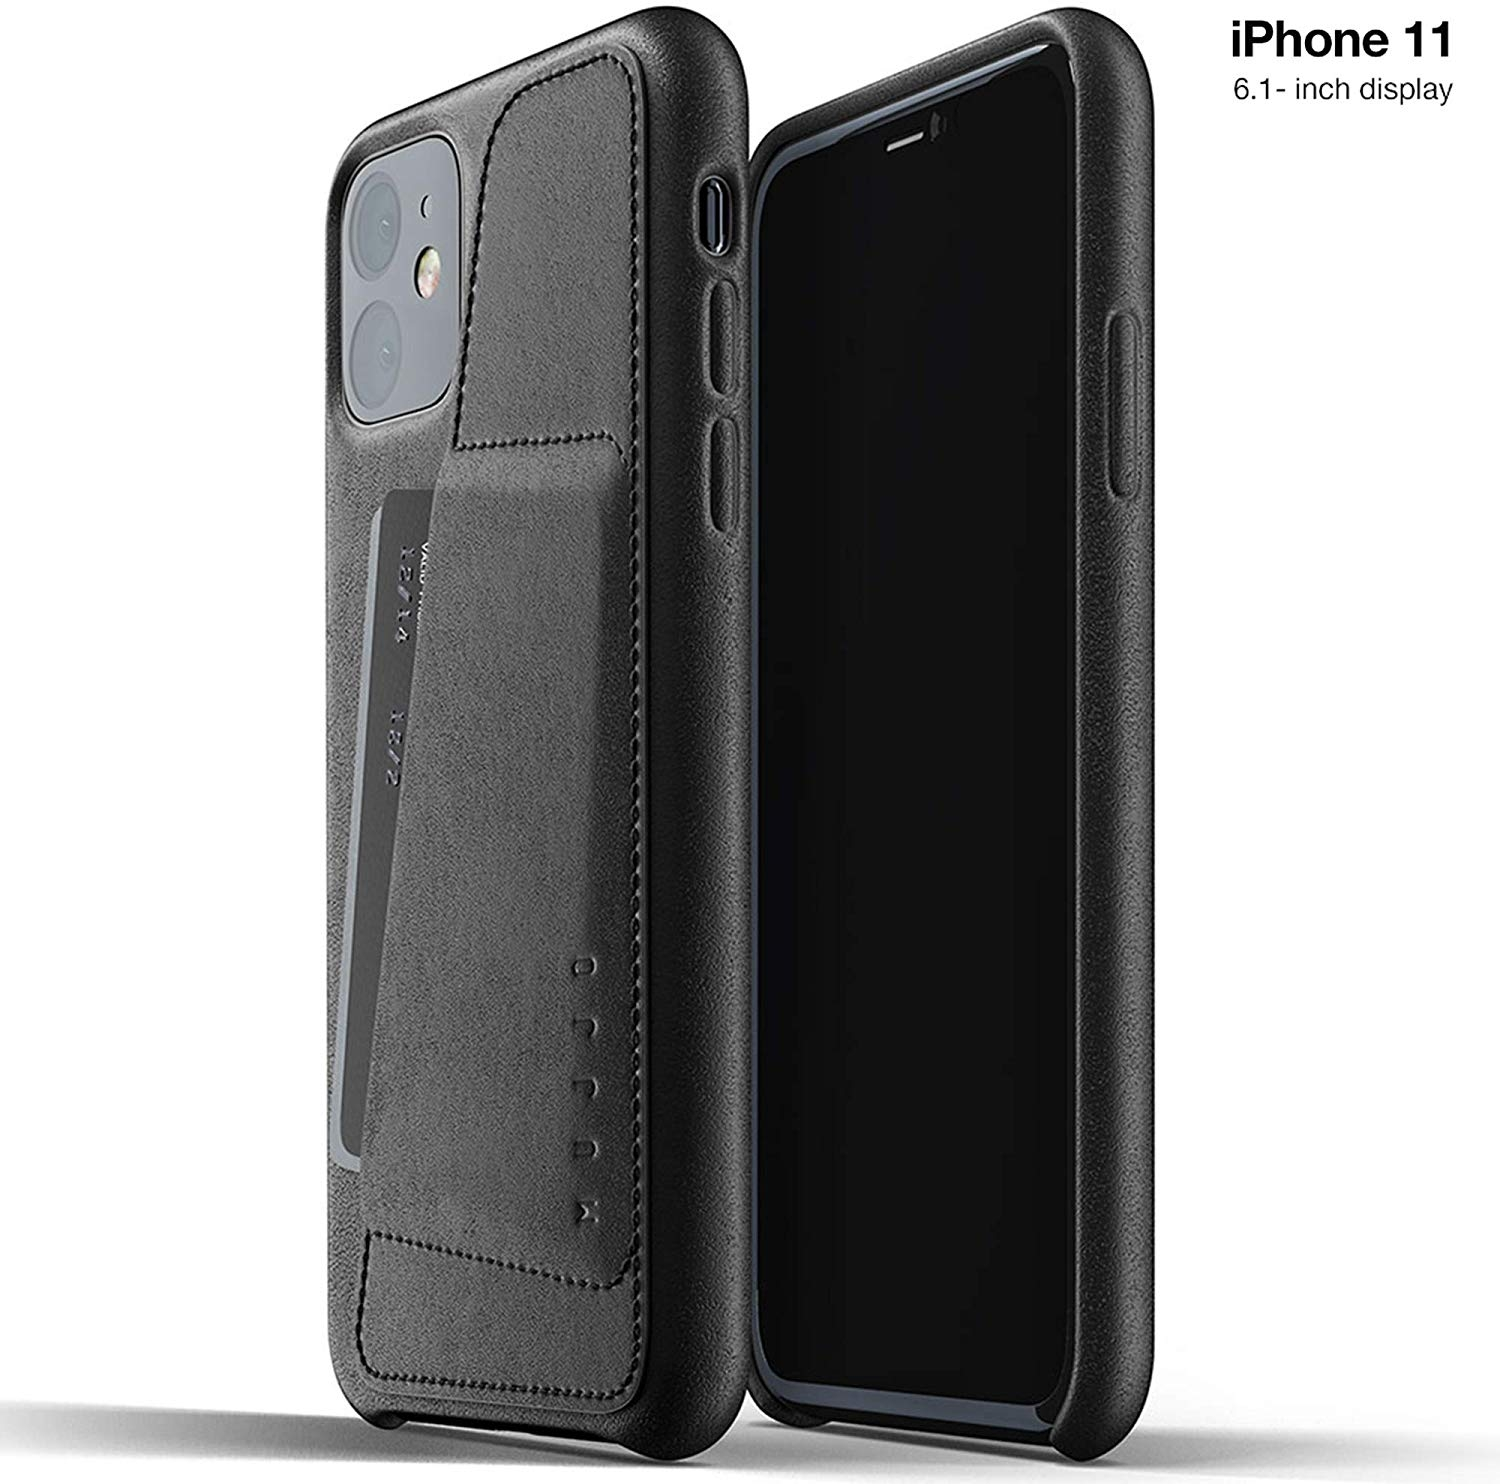 MUJJO Full Leather Wallet Case - Δερμάτινη Θήκη-Πορτοφόλι iPhone 11 - Black (MUJJO-CL-006-BK)